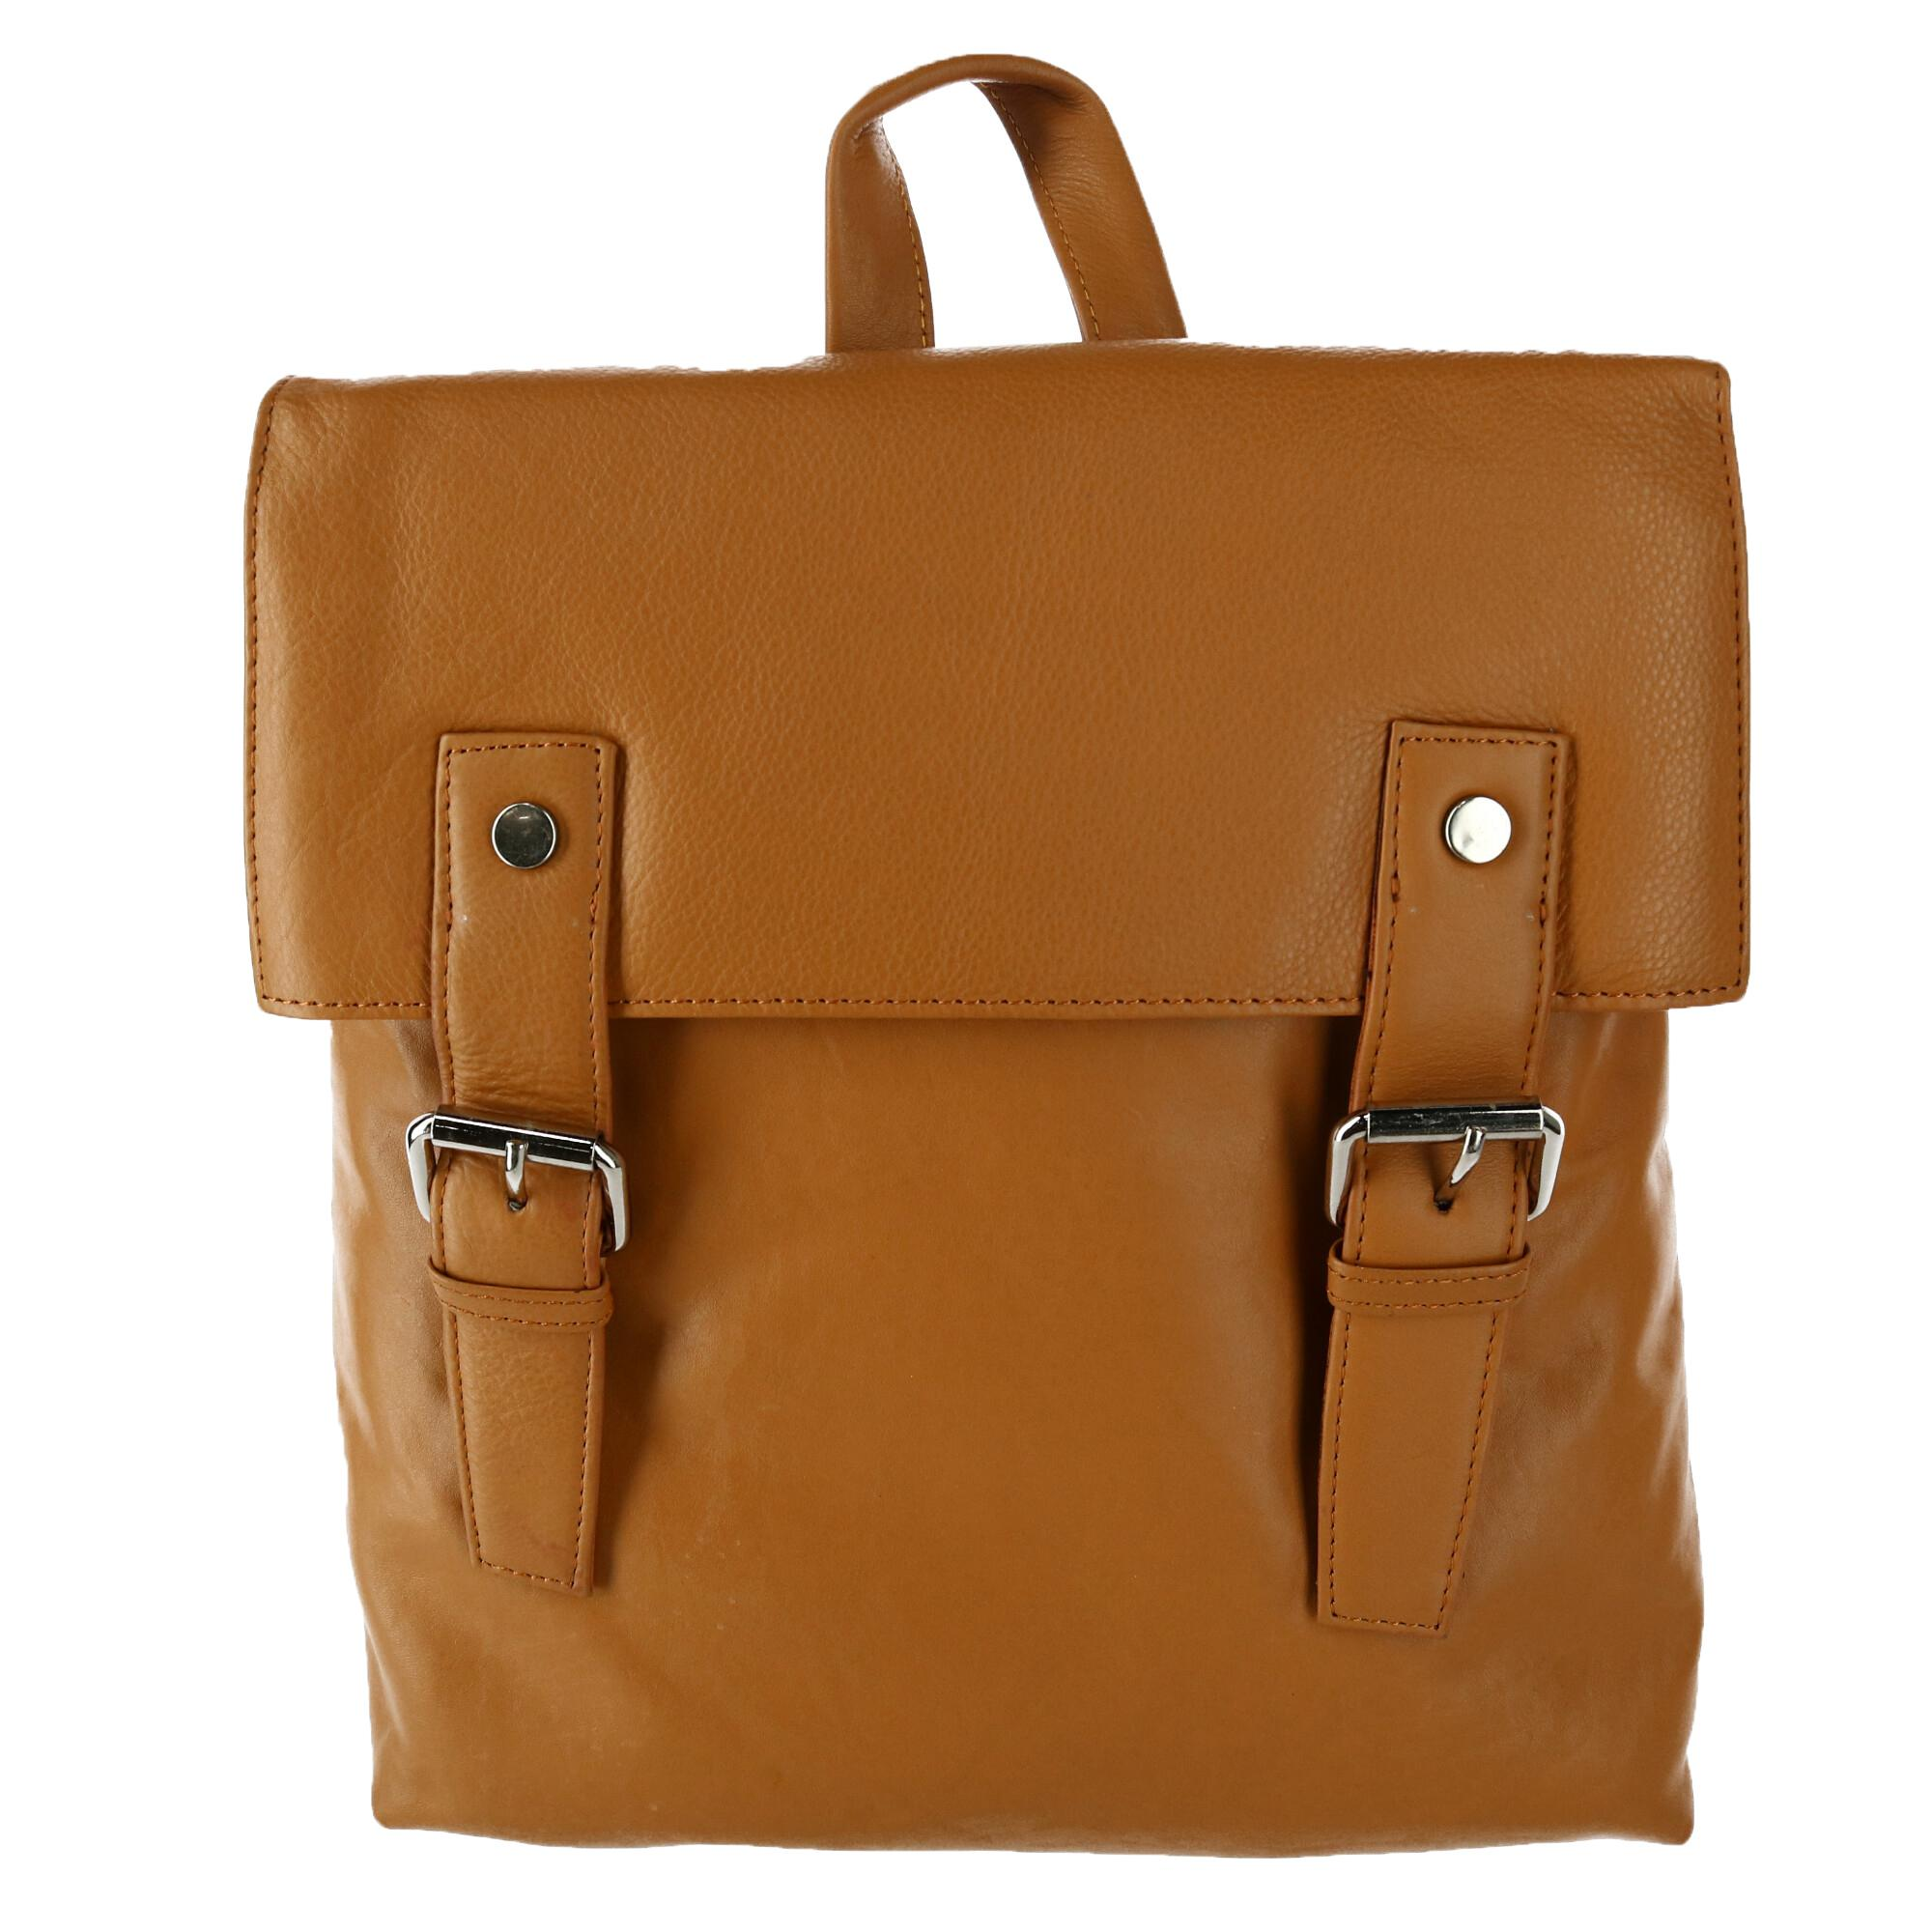 Leather Impressions Women's Magnetic Buckle Backpack Purse - Tan one (LI-10204-TAN LI-10204) photo